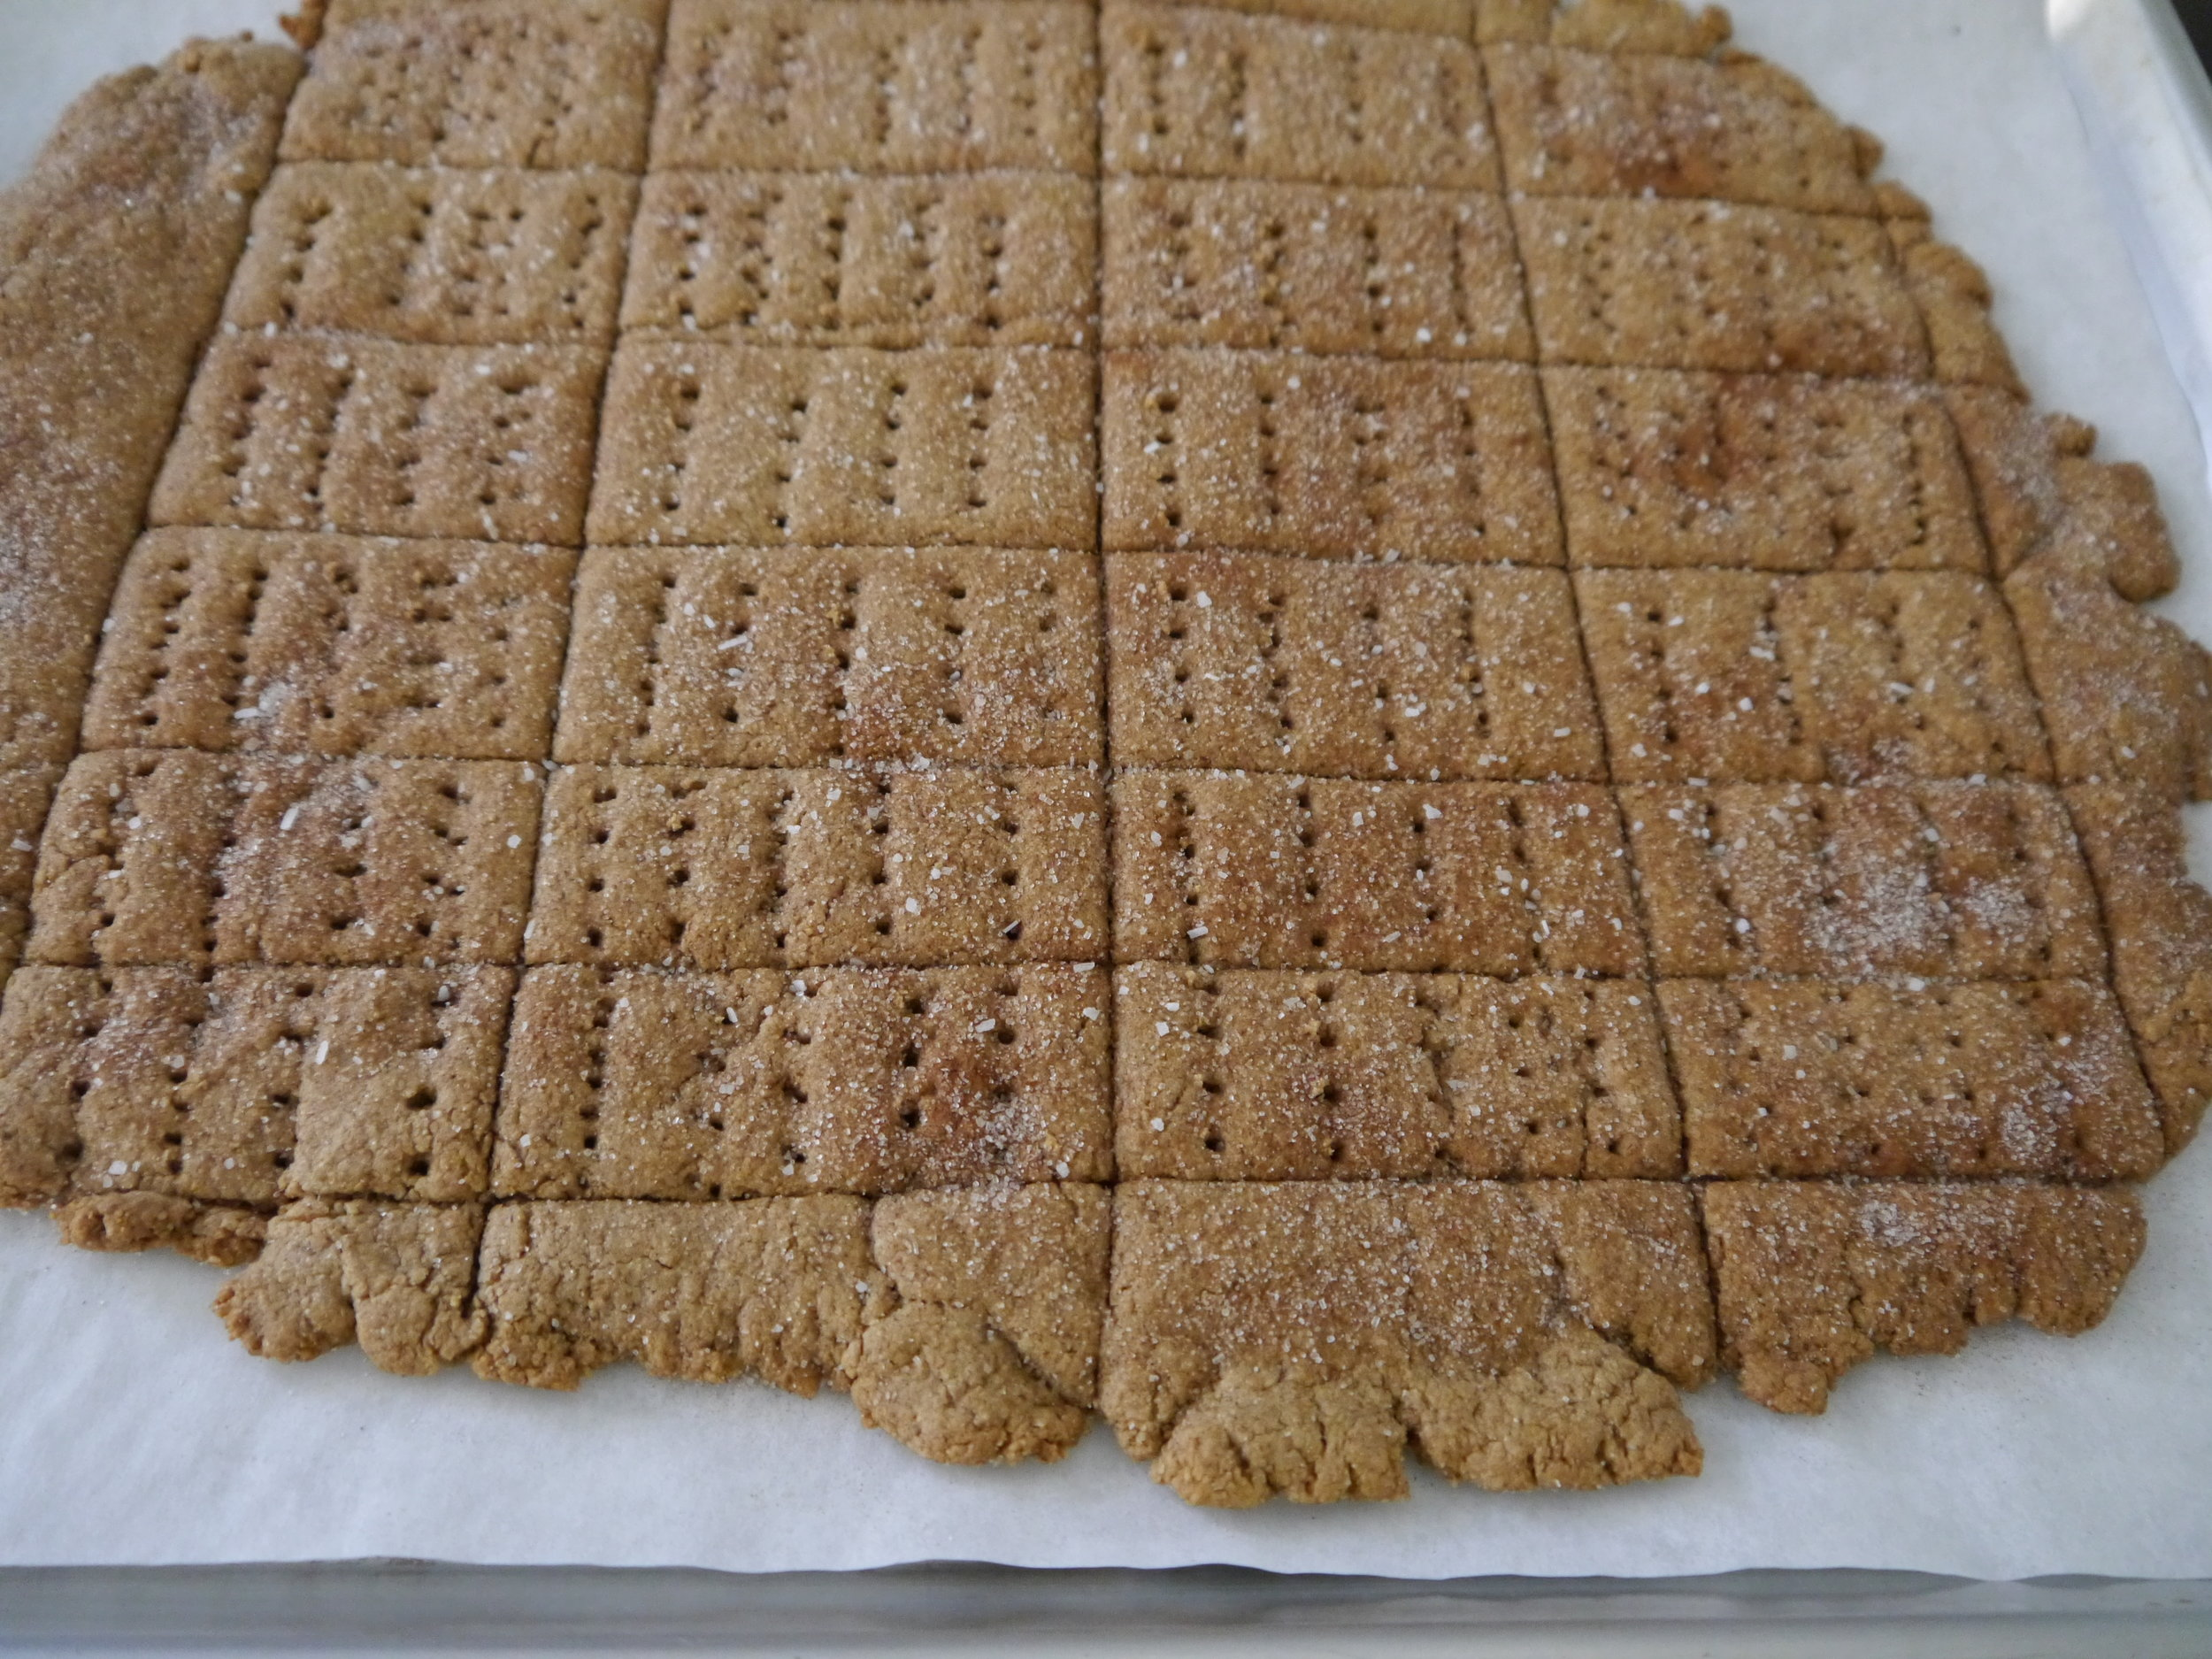 Bake the grahams until the edges are dark golden brown and the center is dry and set, 17 to 20 minutes. Cool completely on the sheet on a wire rack, then break into crackers along the cut lines.